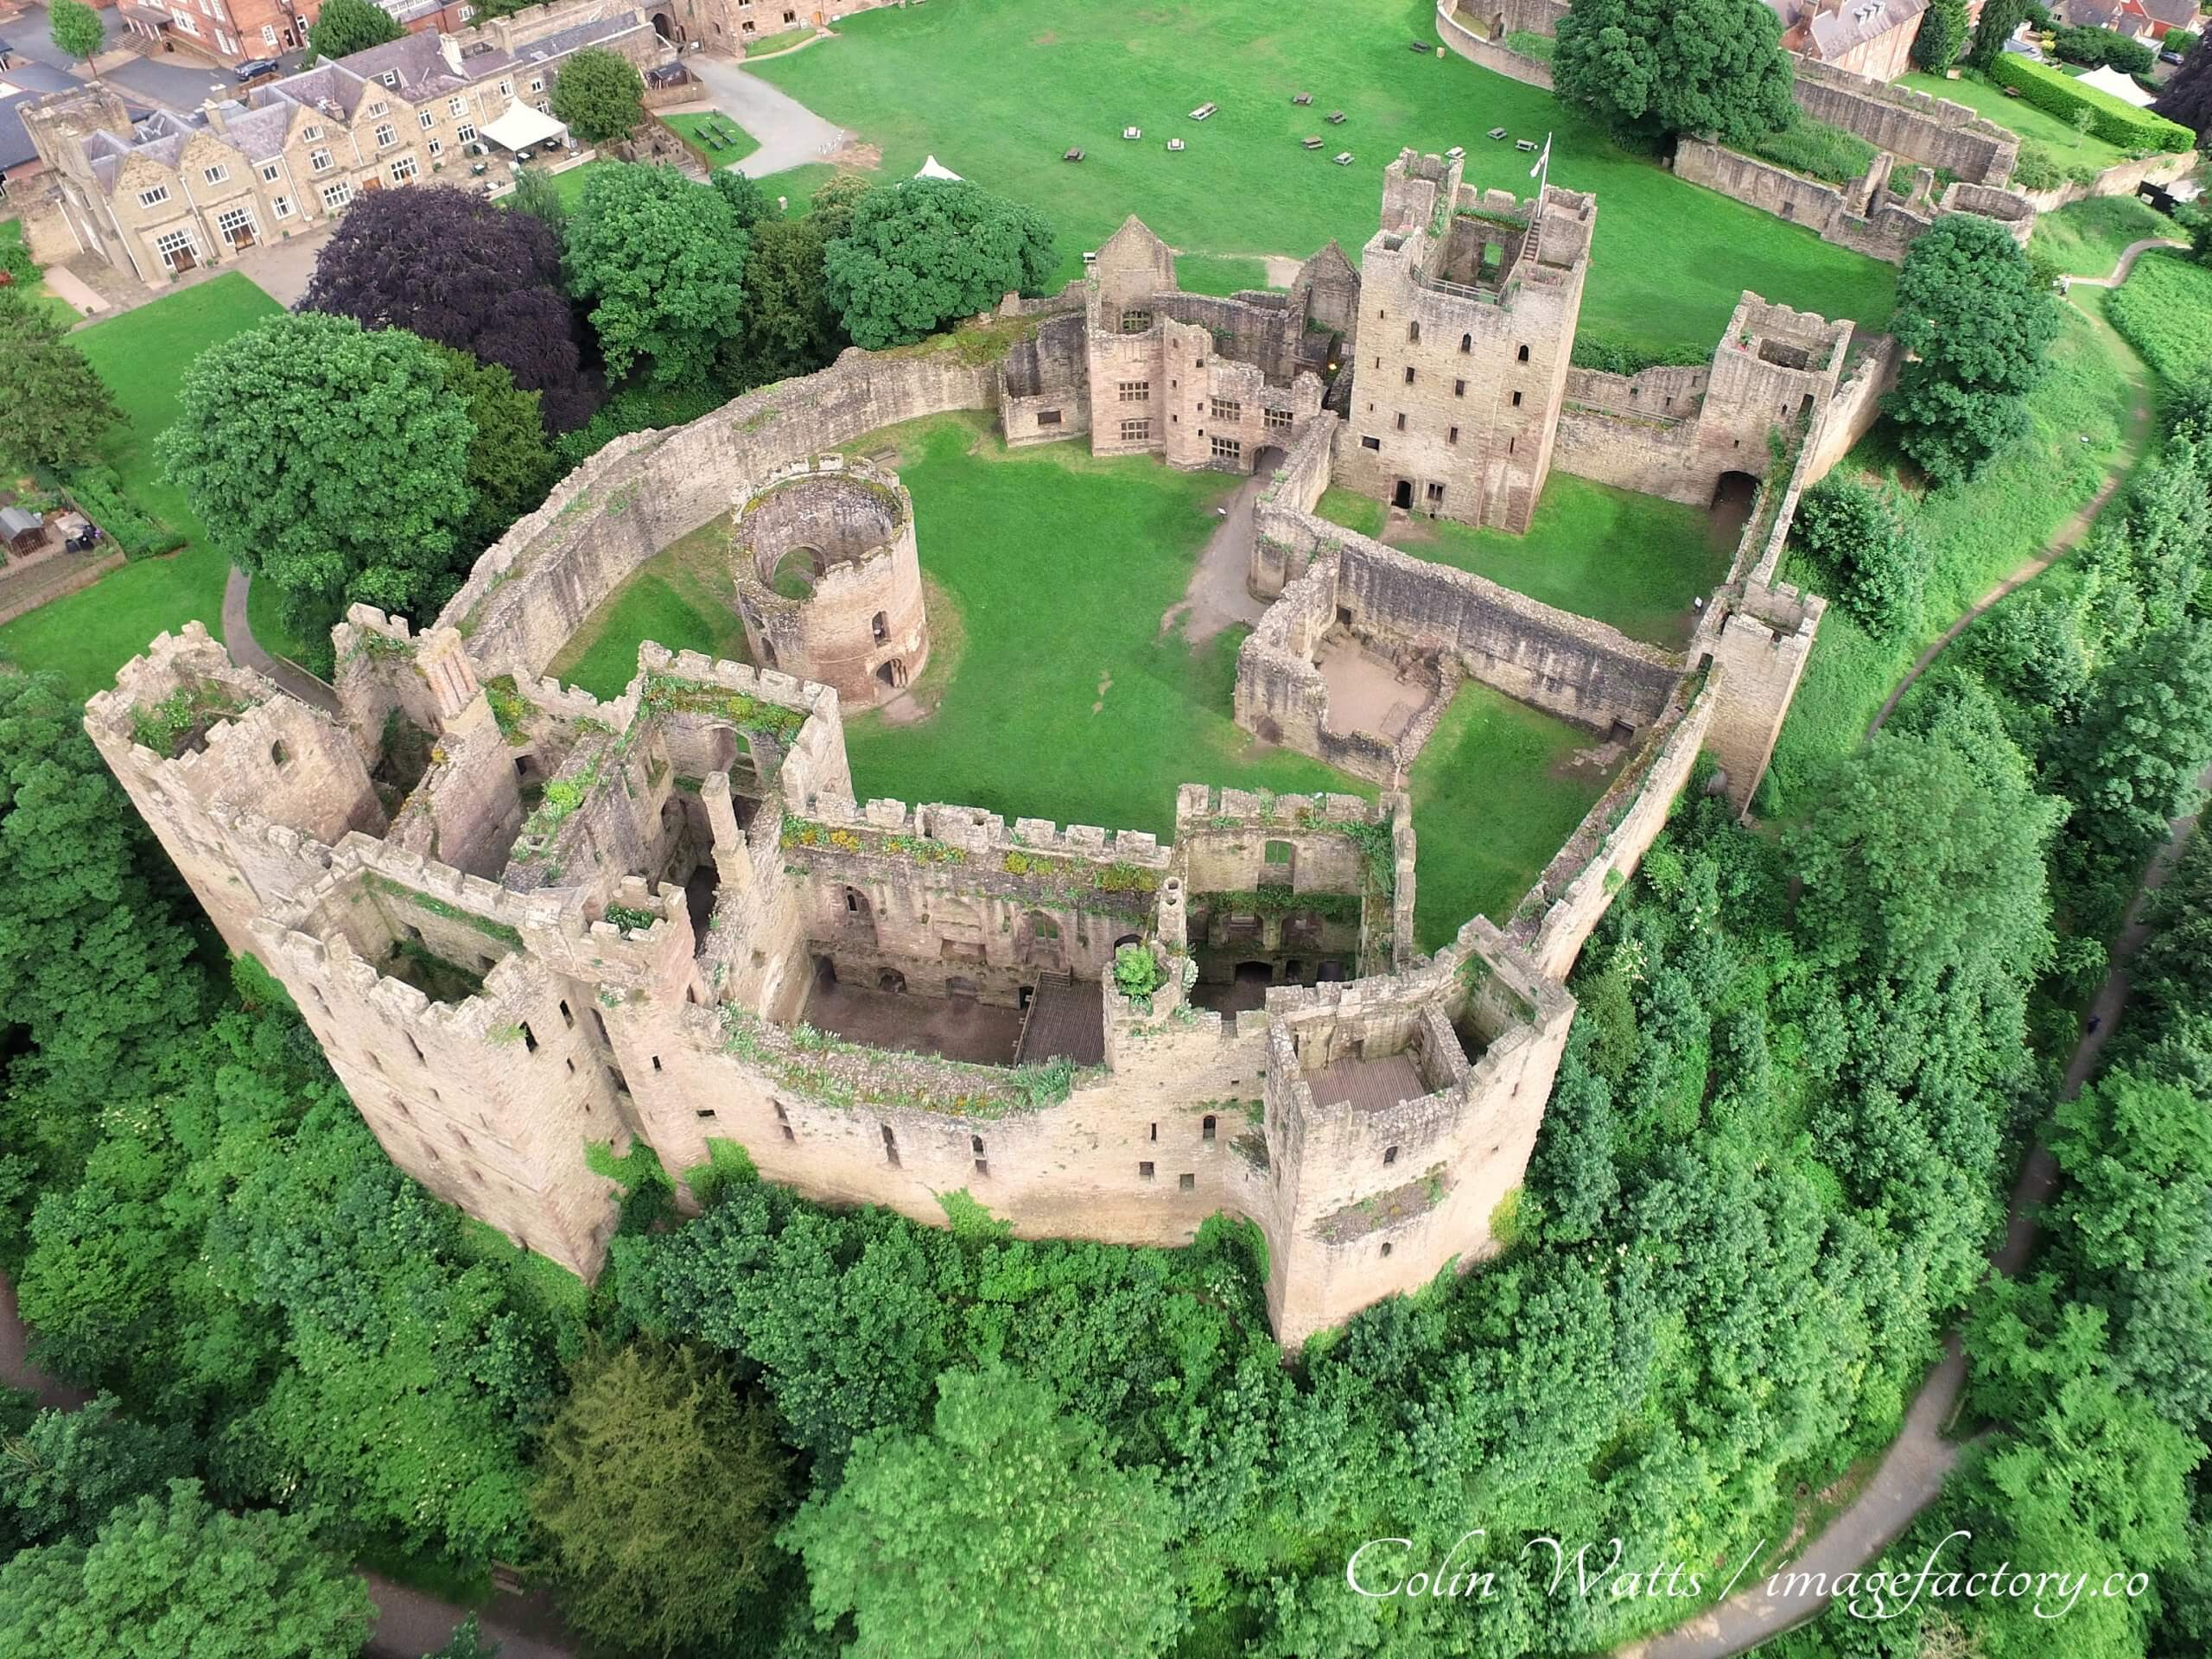 Ludlow Castle, Ludlow, Shropshire, UK, another great outdoor stop for your spring 'staycation'